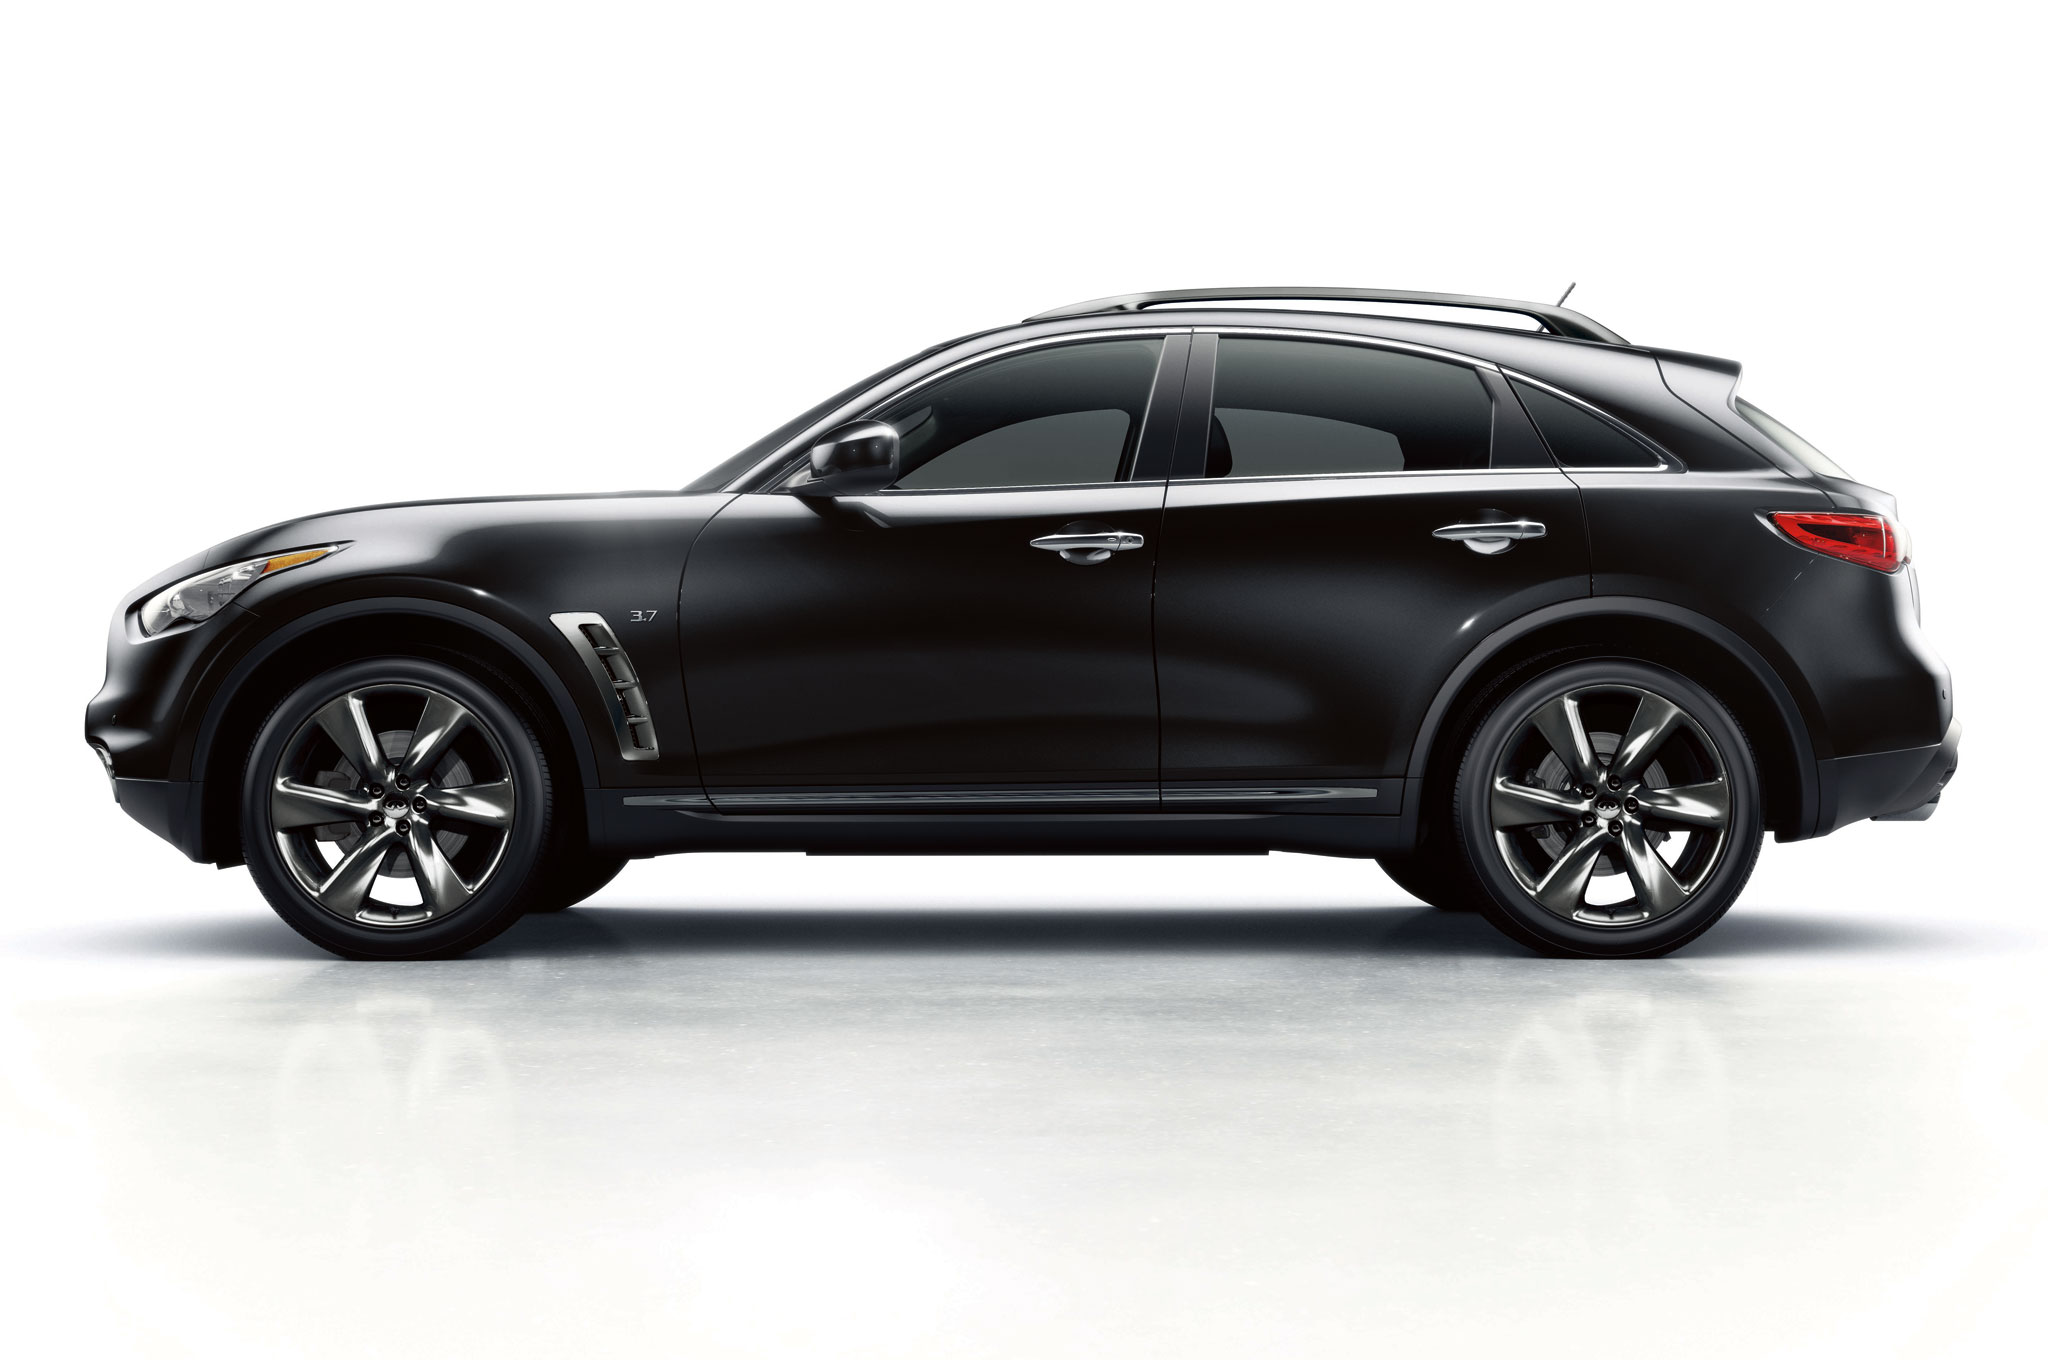 2015 infiniti qx50 qx70 pricing announced automobile magazine 22 vanachro Image collections